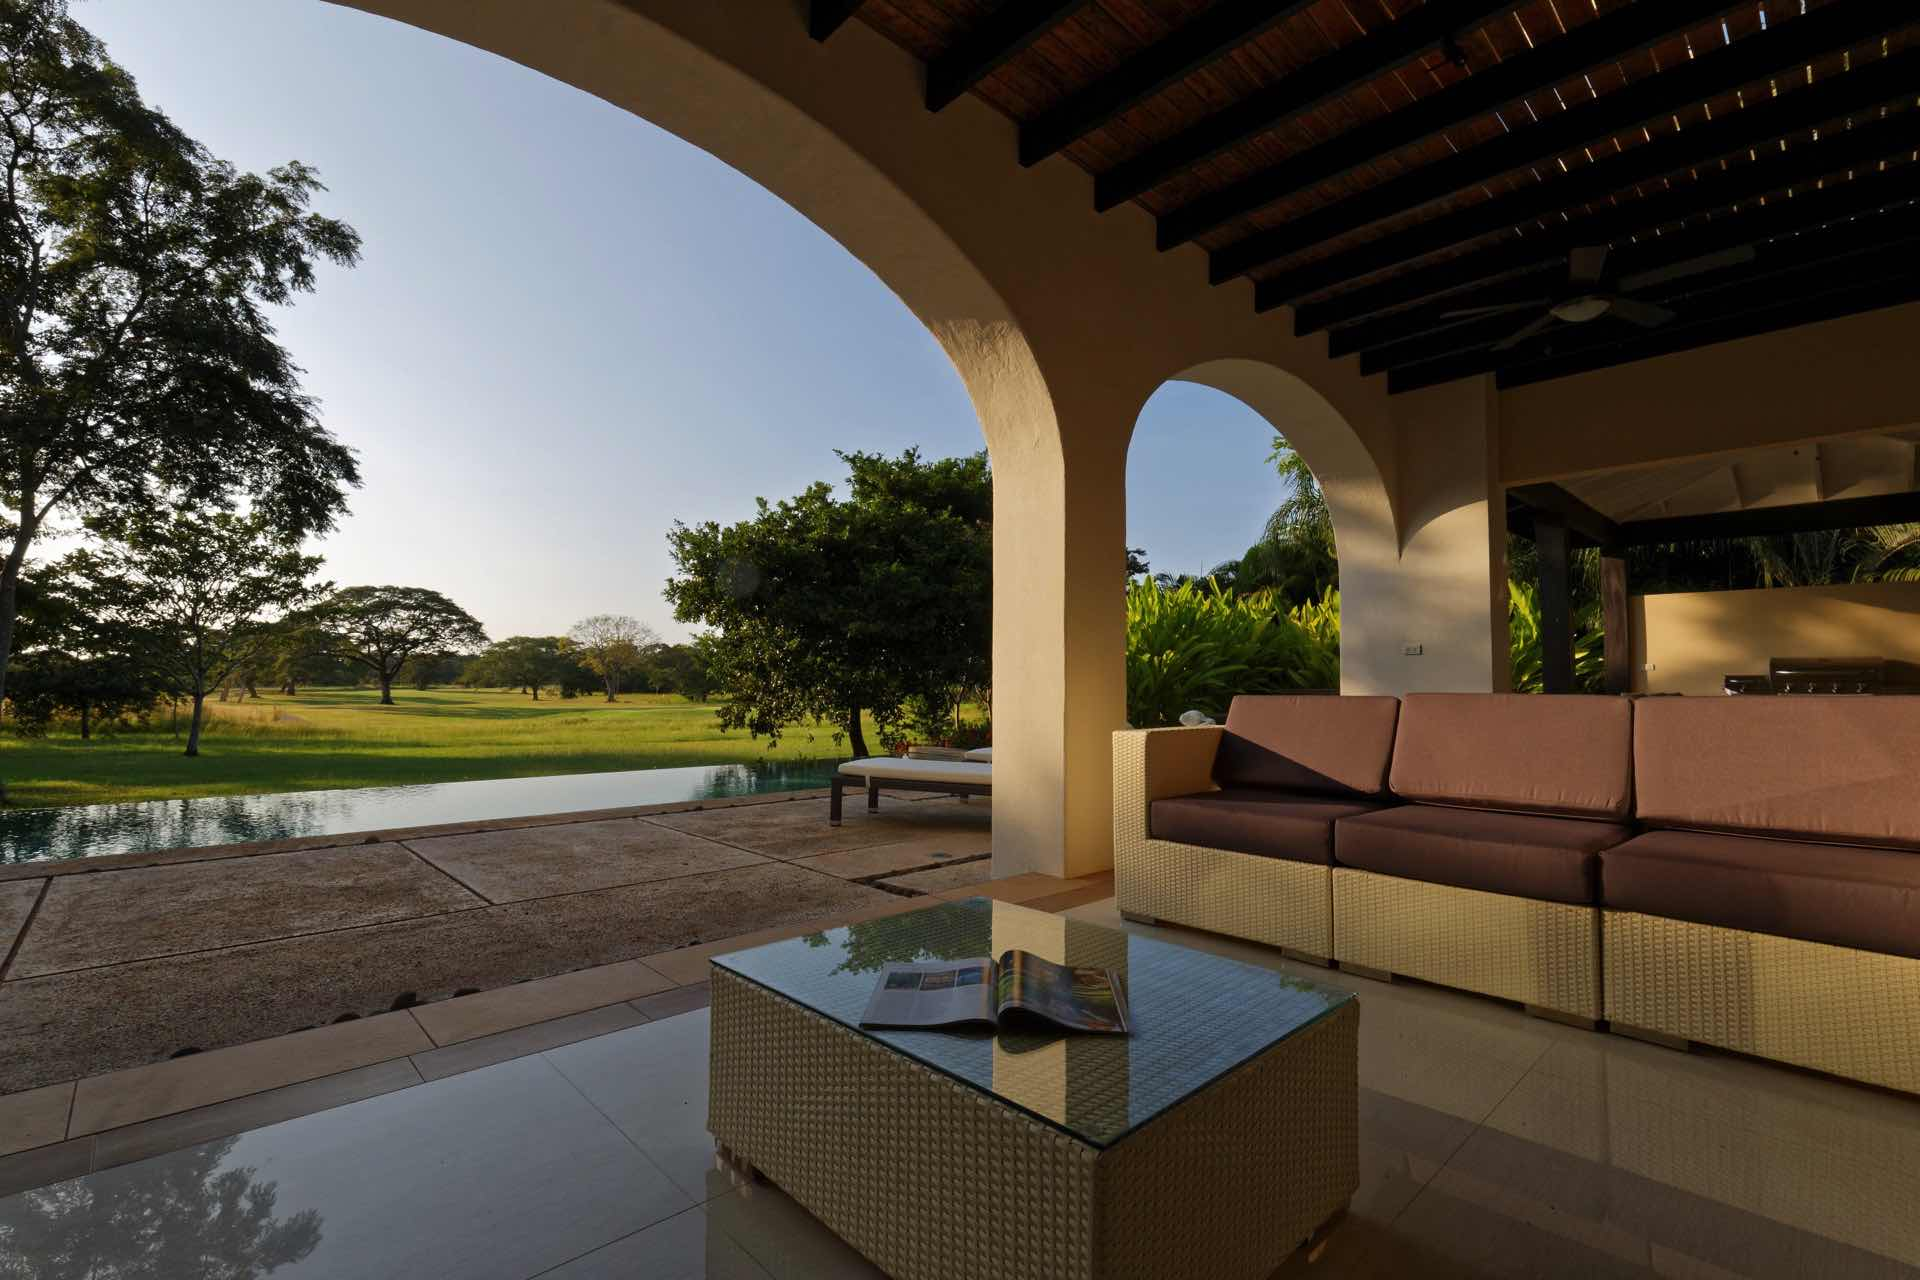 The magic tranquility of sunset at Villa Los Venados